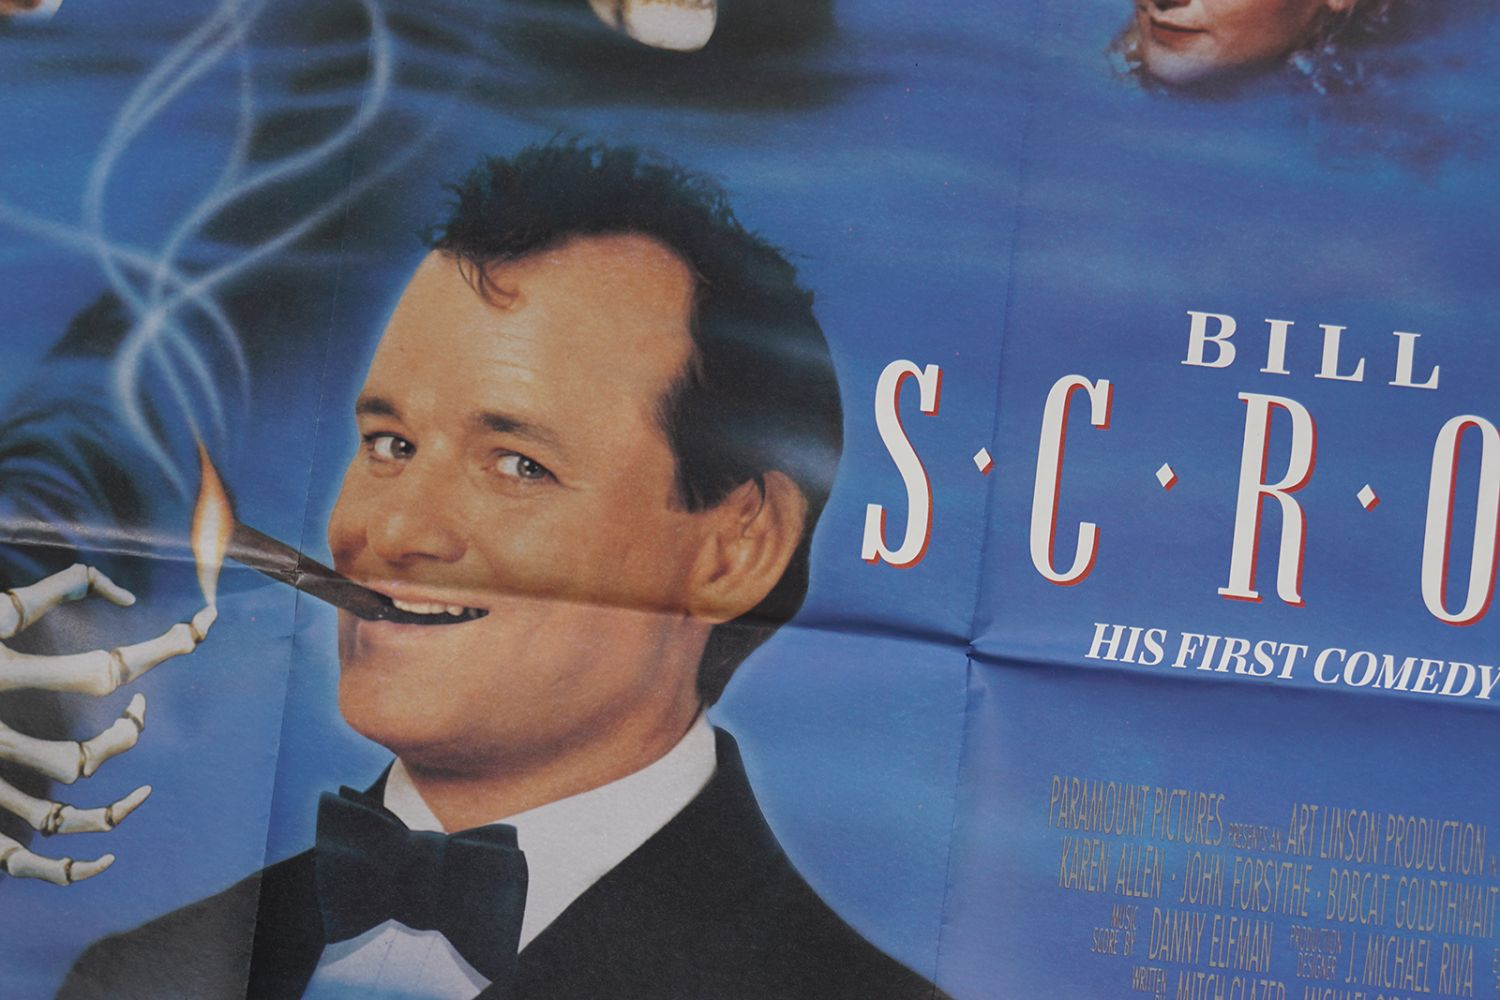 SCROOGED - Image 2 of 4